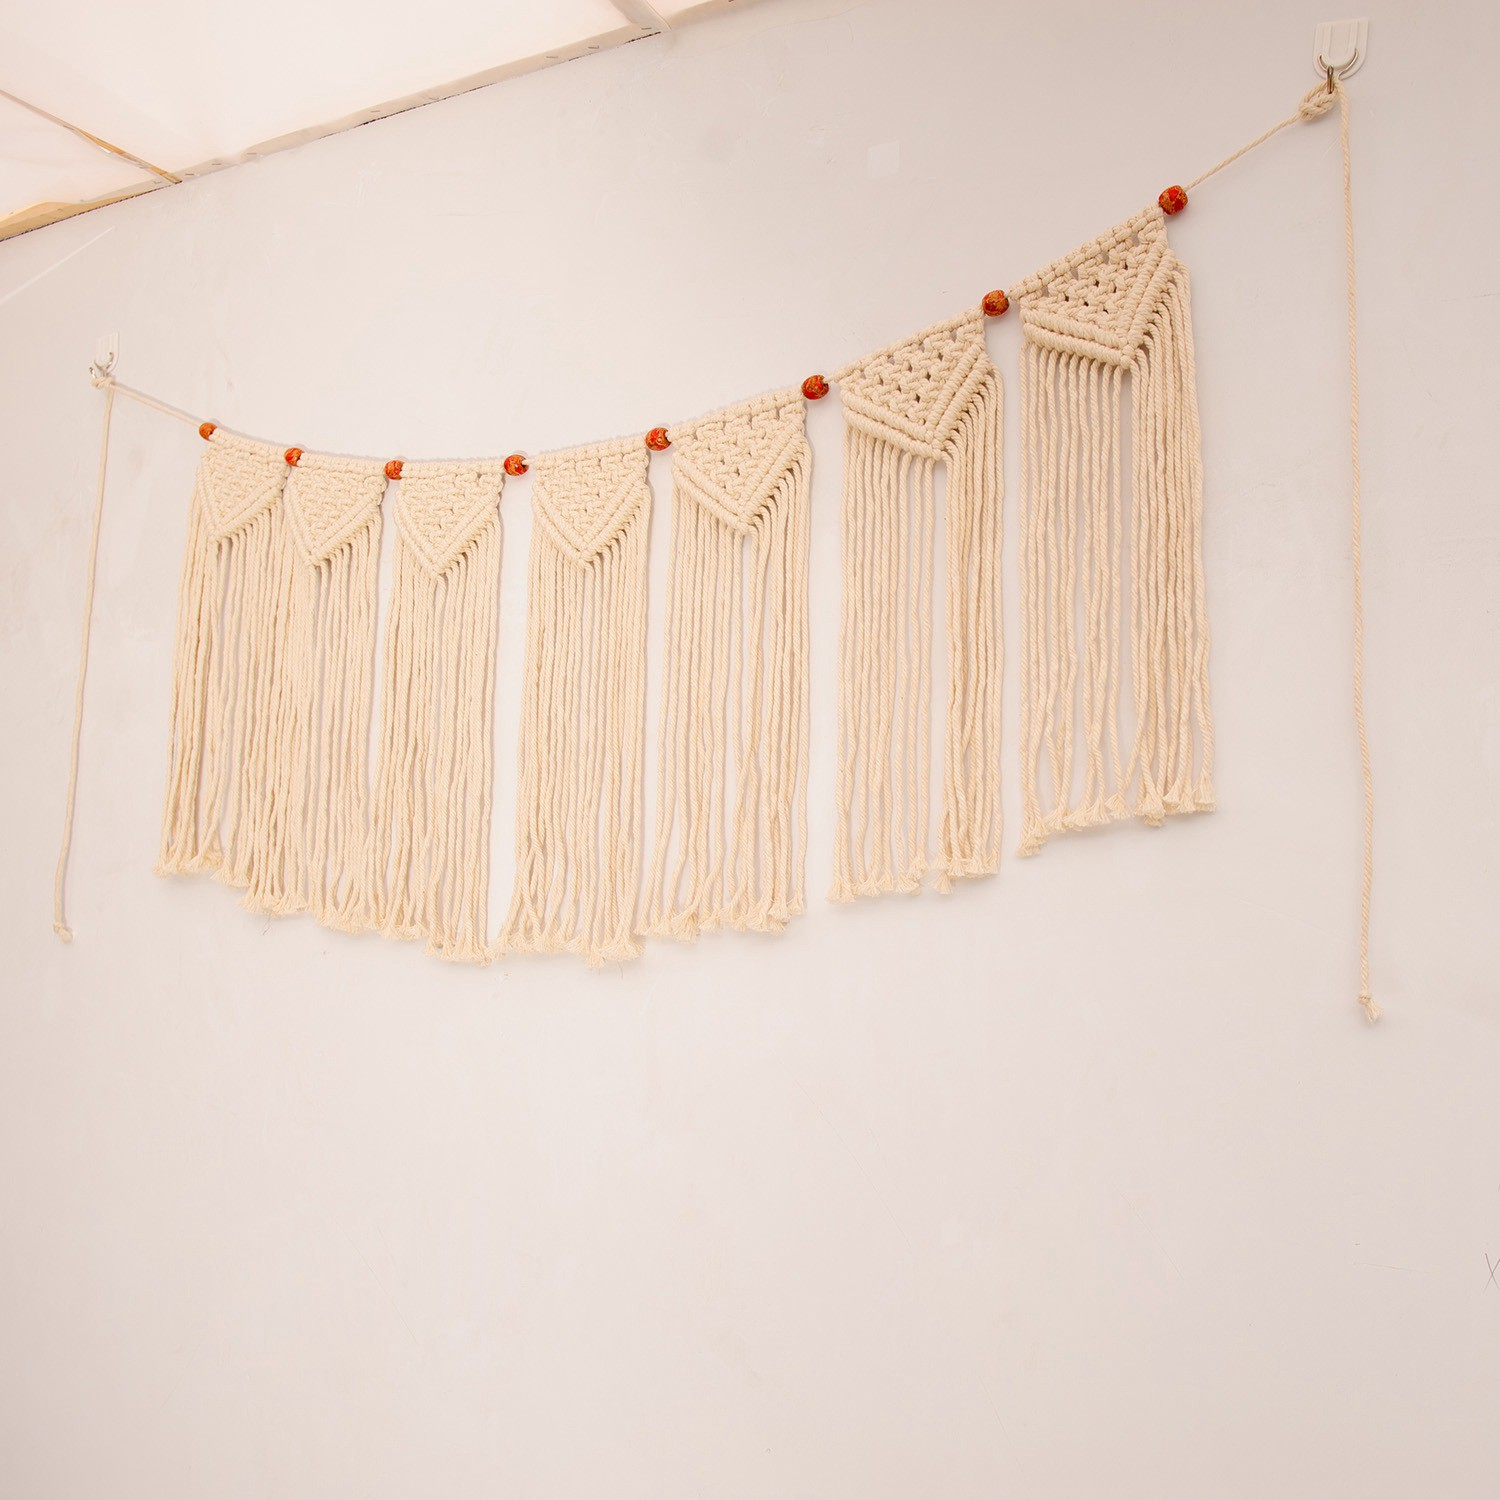 Macrame Woven Wall Hanging Fringe Garland Banner Bohemian Wall Decor Woven Home Decoration For Apartment Bedroom Living Room Gallery Shopee Philippines